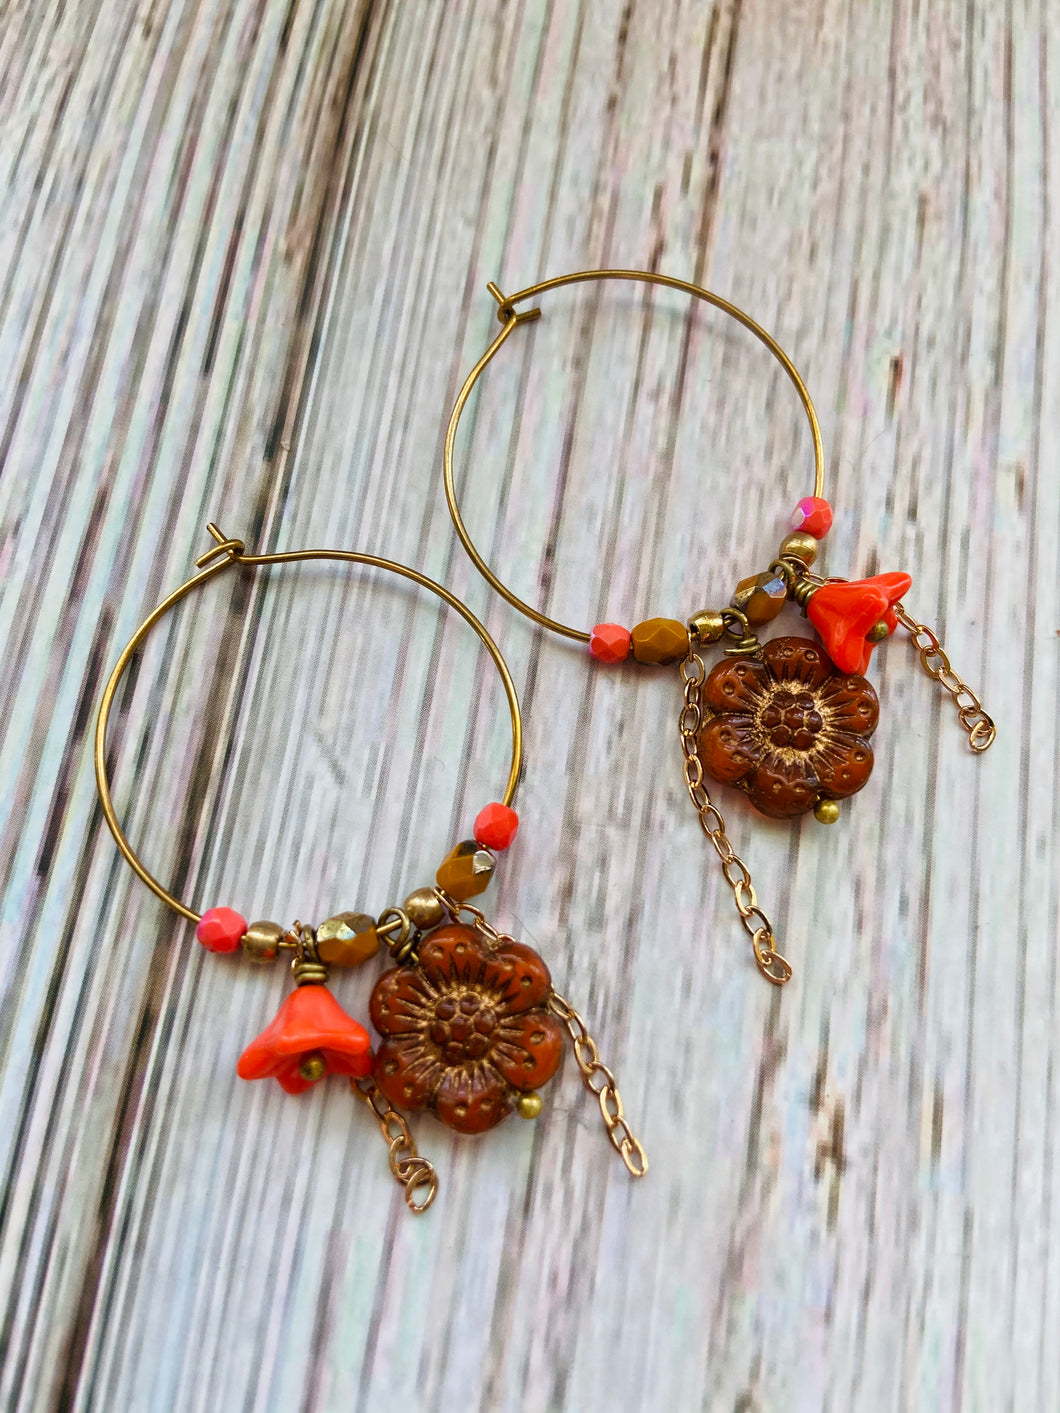 Orange & Gold Flower Hoop Earrings - Black Cat Modern Boho Handmade Jewelry